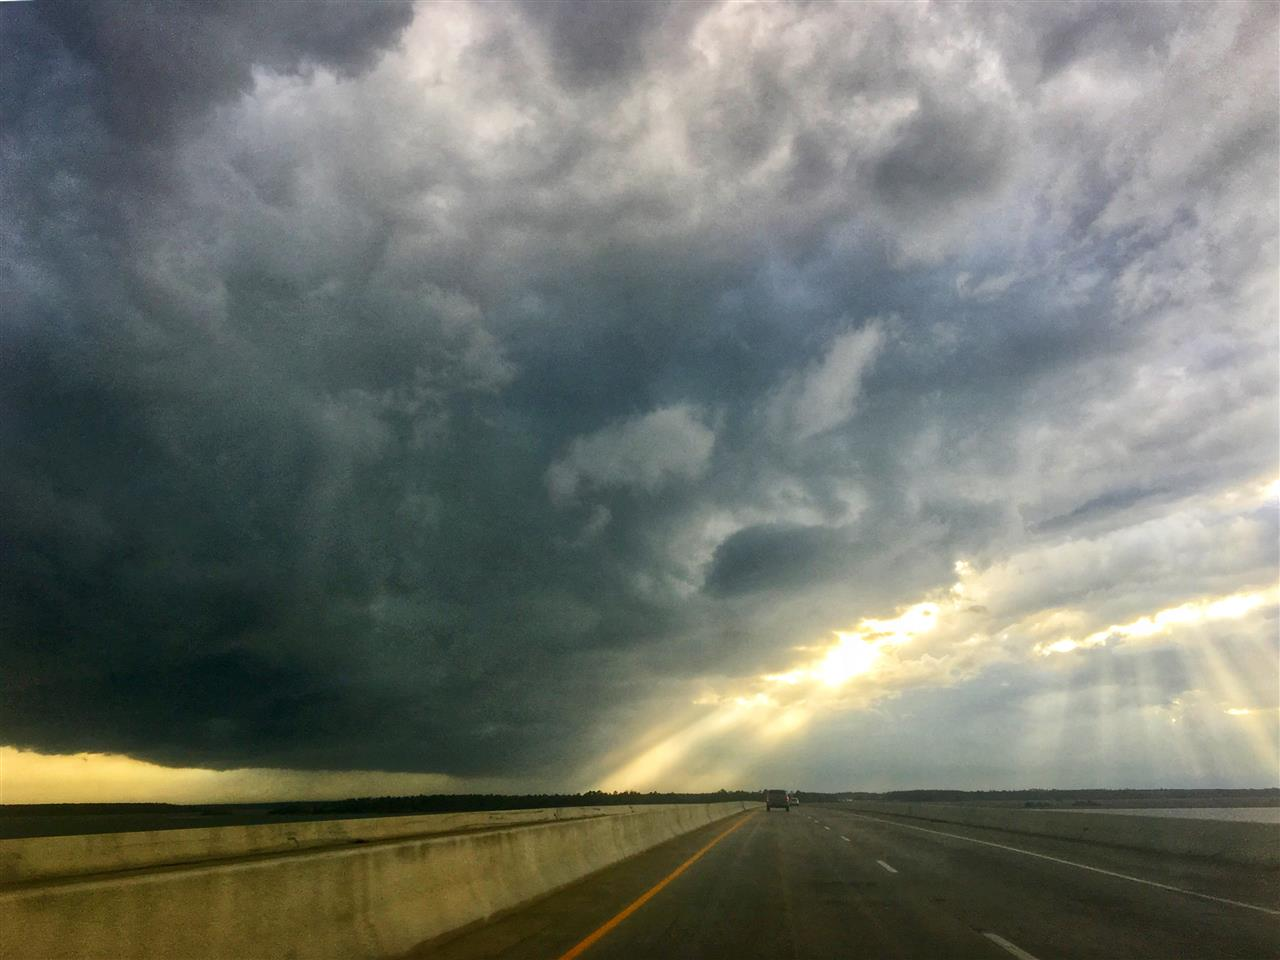 Storms brewing over the marshes in Savannah